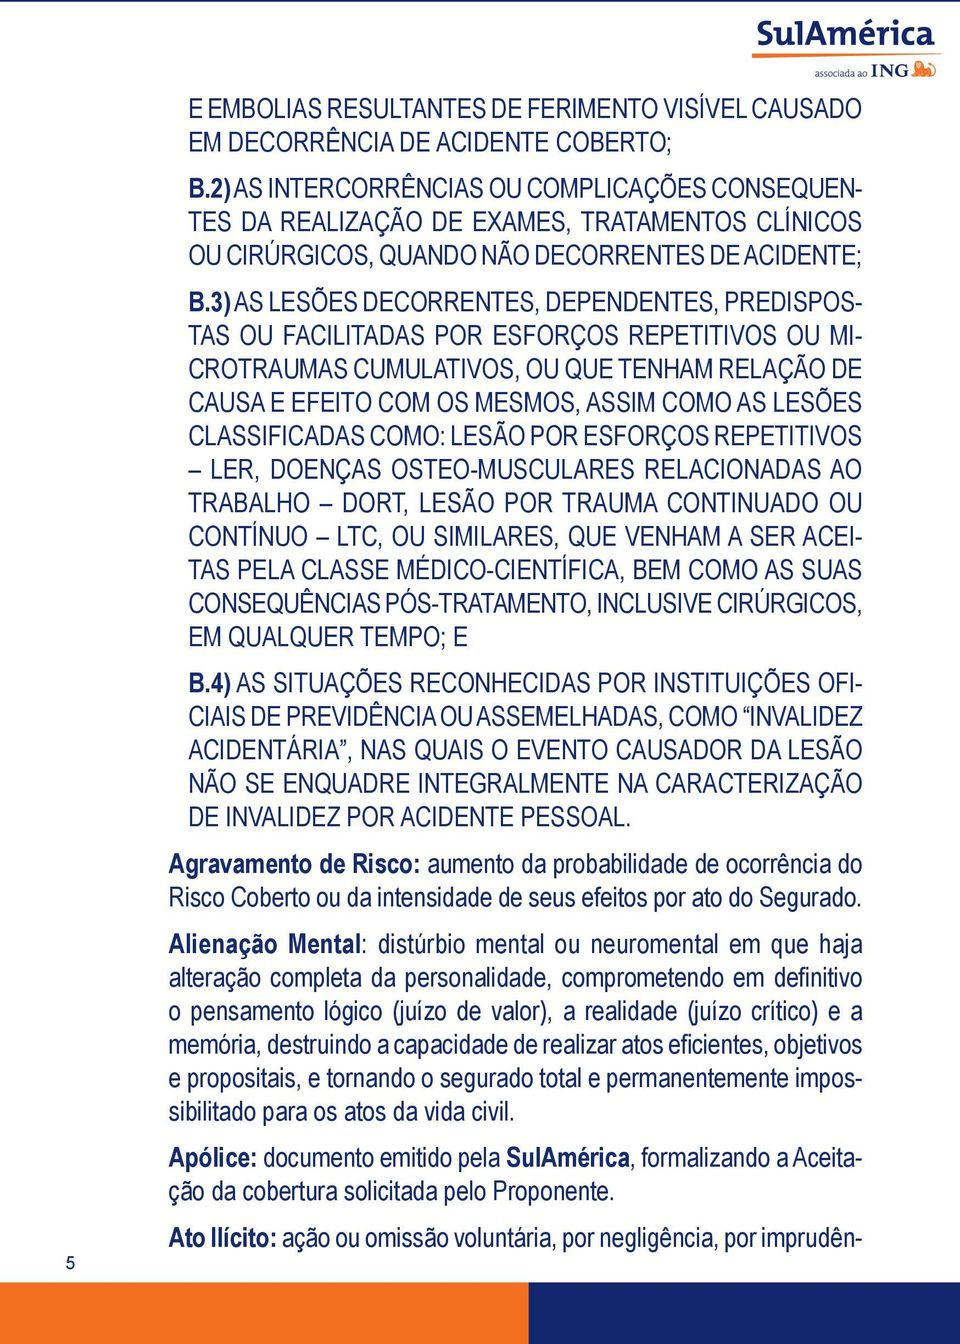 3) AS LESÕES DECORRENTES, DEPENDENTES, PREDISPOS- TAS OU FACILITADAS POR ESFORÇOS REPETITIVOS OU MI- CROTRAUMAS CUMULATIVOS, OU QUE TENHAM RELAÇÃO DE CAUSA E EFEITO COM OS MESMOS, ASSIM COMO AS